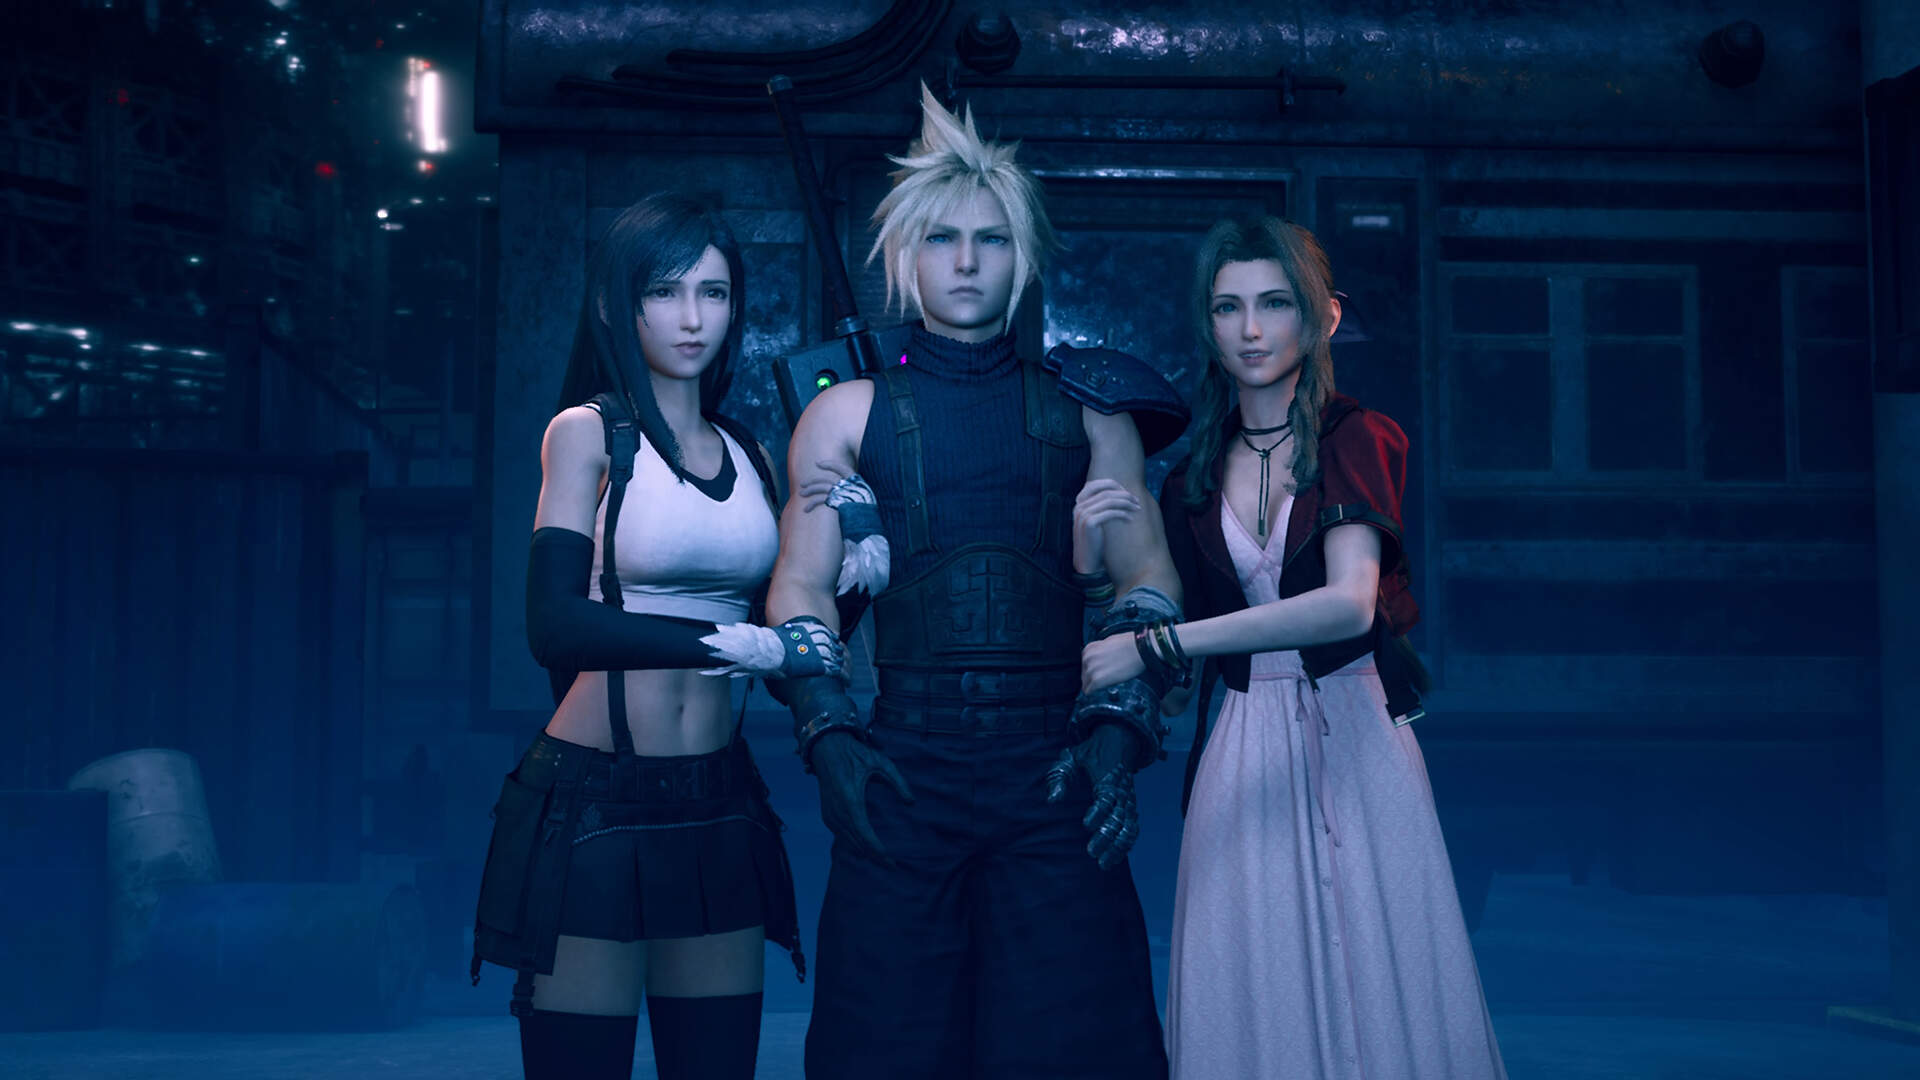 I Can T Believe Final Fantasy 7 Remake Is Converting Me To Team Aerith Usgamer